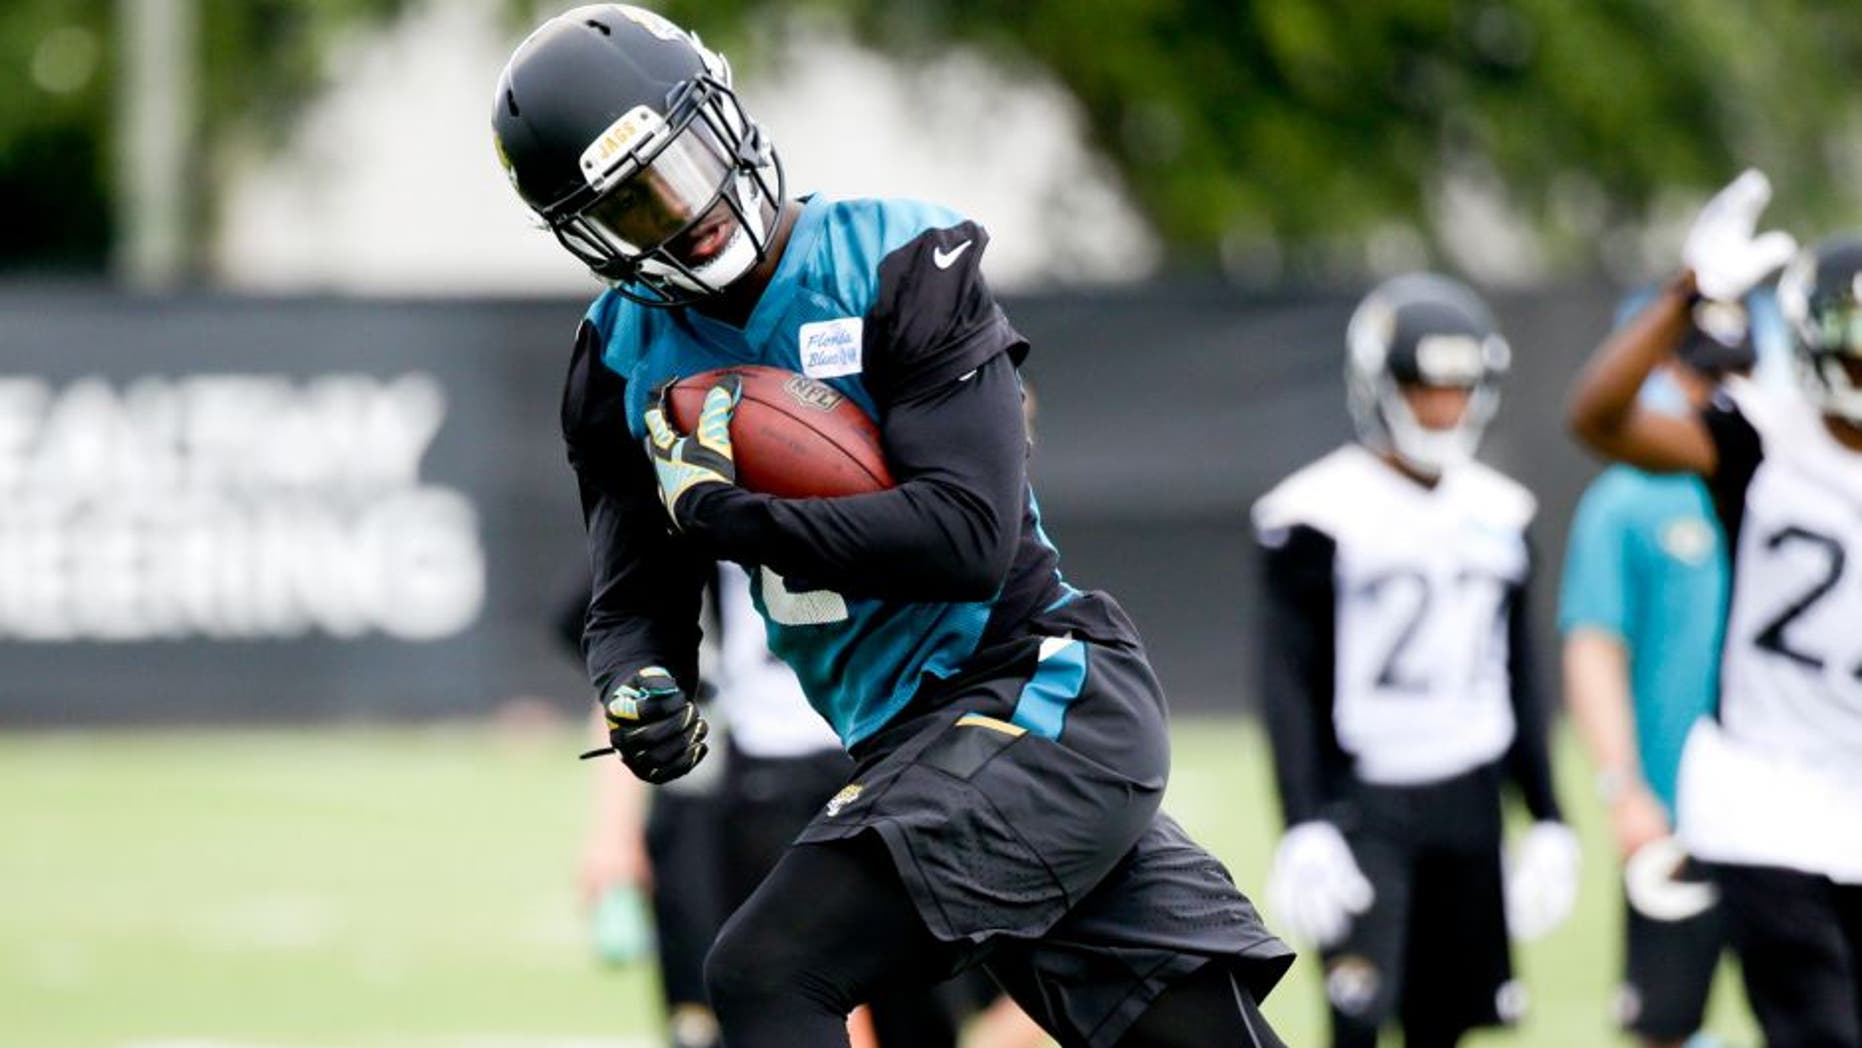 Jacksonville Jaguars running back T.J. Yeldon carries the ball during a drill at NFL football organized training activities, Tuesday, May 26, 2015, in Jacksonville, Fla. (AP Photo/John Raoux)